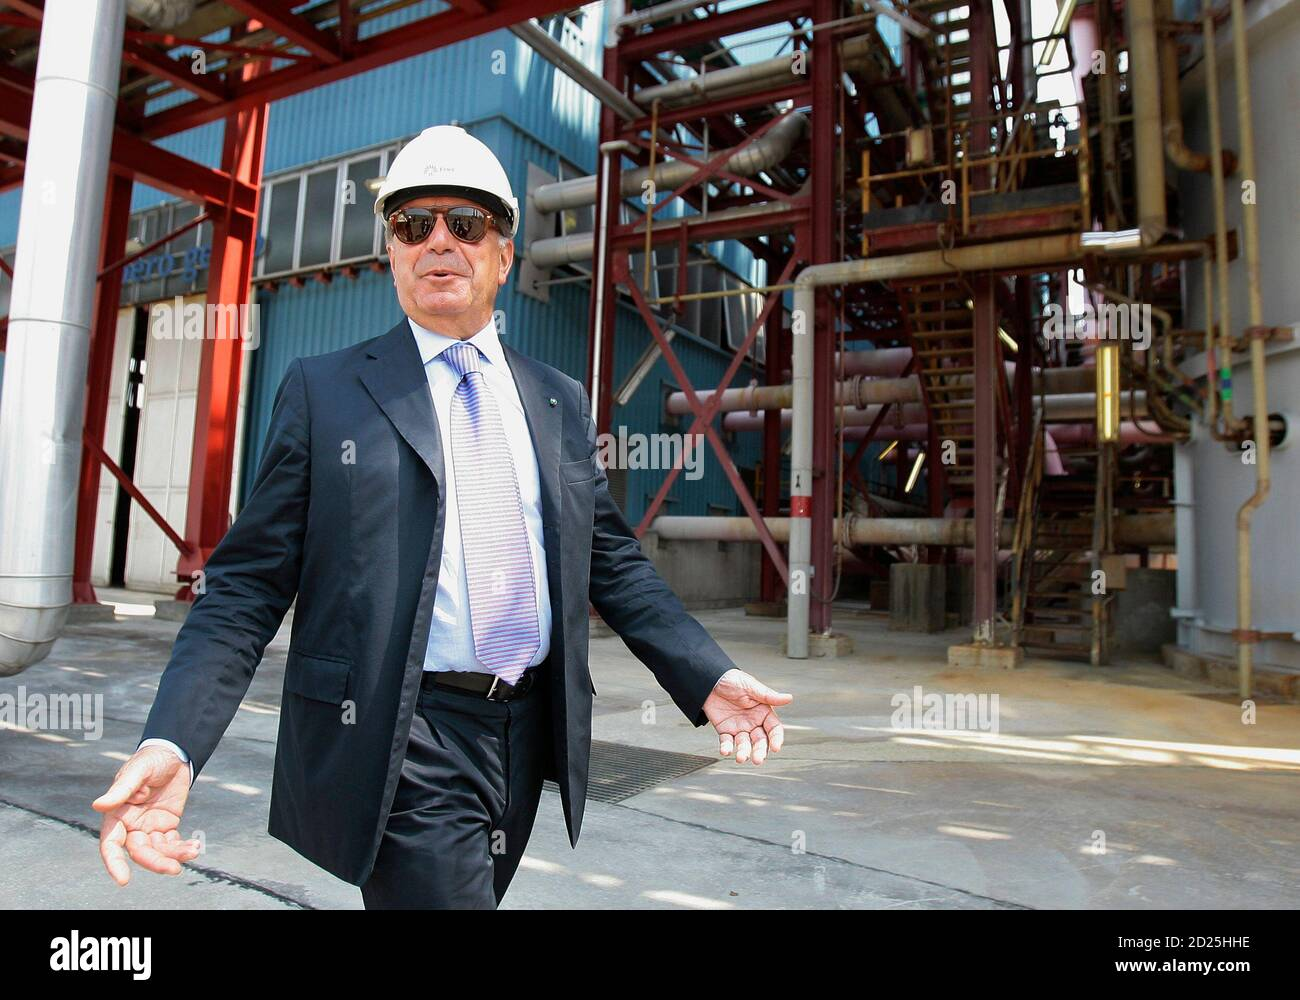 Enel SpA CEO Fulvio Conti gestures as walks during the inauguration of the new hydrogen-fuelled combined cycle power plant inside the Andrea Palladio Fusina plant in Venice July 12, 2010. Italy's largest utility Enel SpA aims to start converting a major oil-fuelled power plant to use clean coal technology next year as part of its drive to cut carbon emissions, Conti said on Monday.  REUTERS/Alessandro Garofalo (ITALY - Tags: ENERGY BUSINESS) Stock Photo